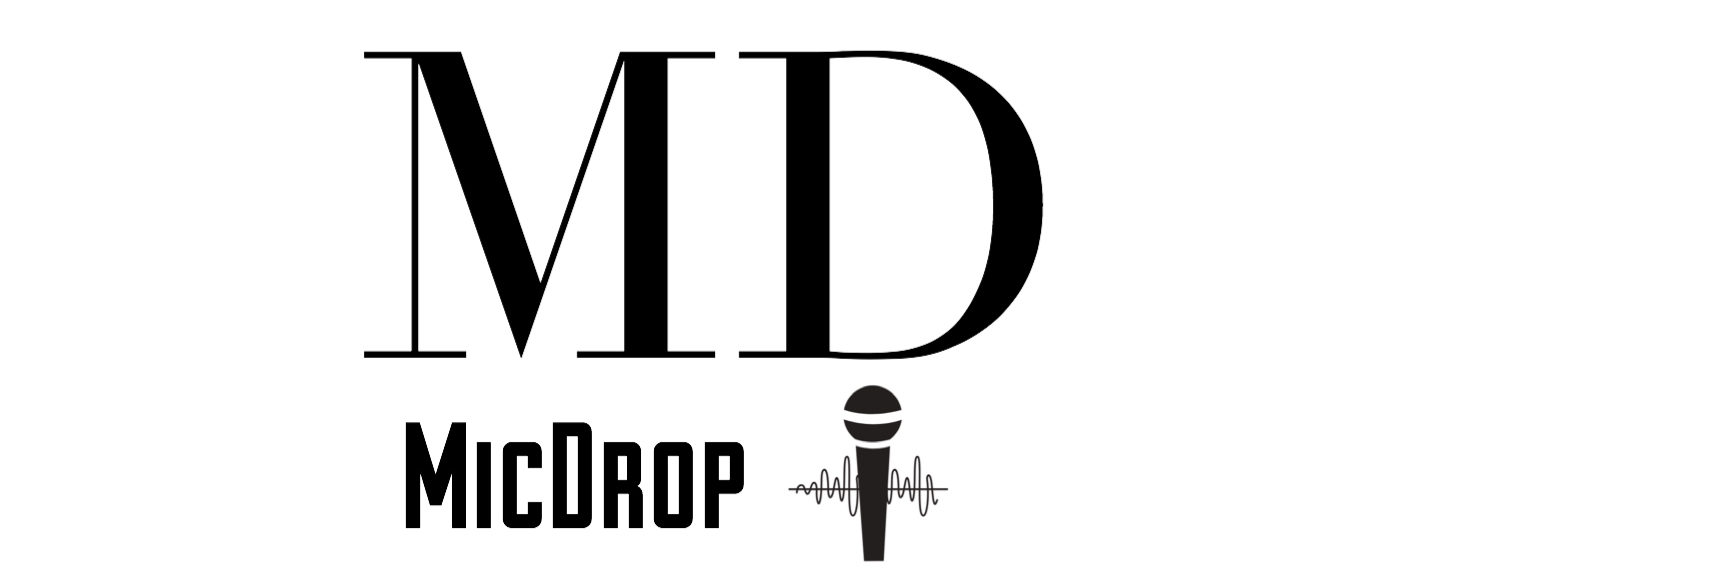 Free Rap Clipart mic drop, Download Free Clip Art on Owips.com png free